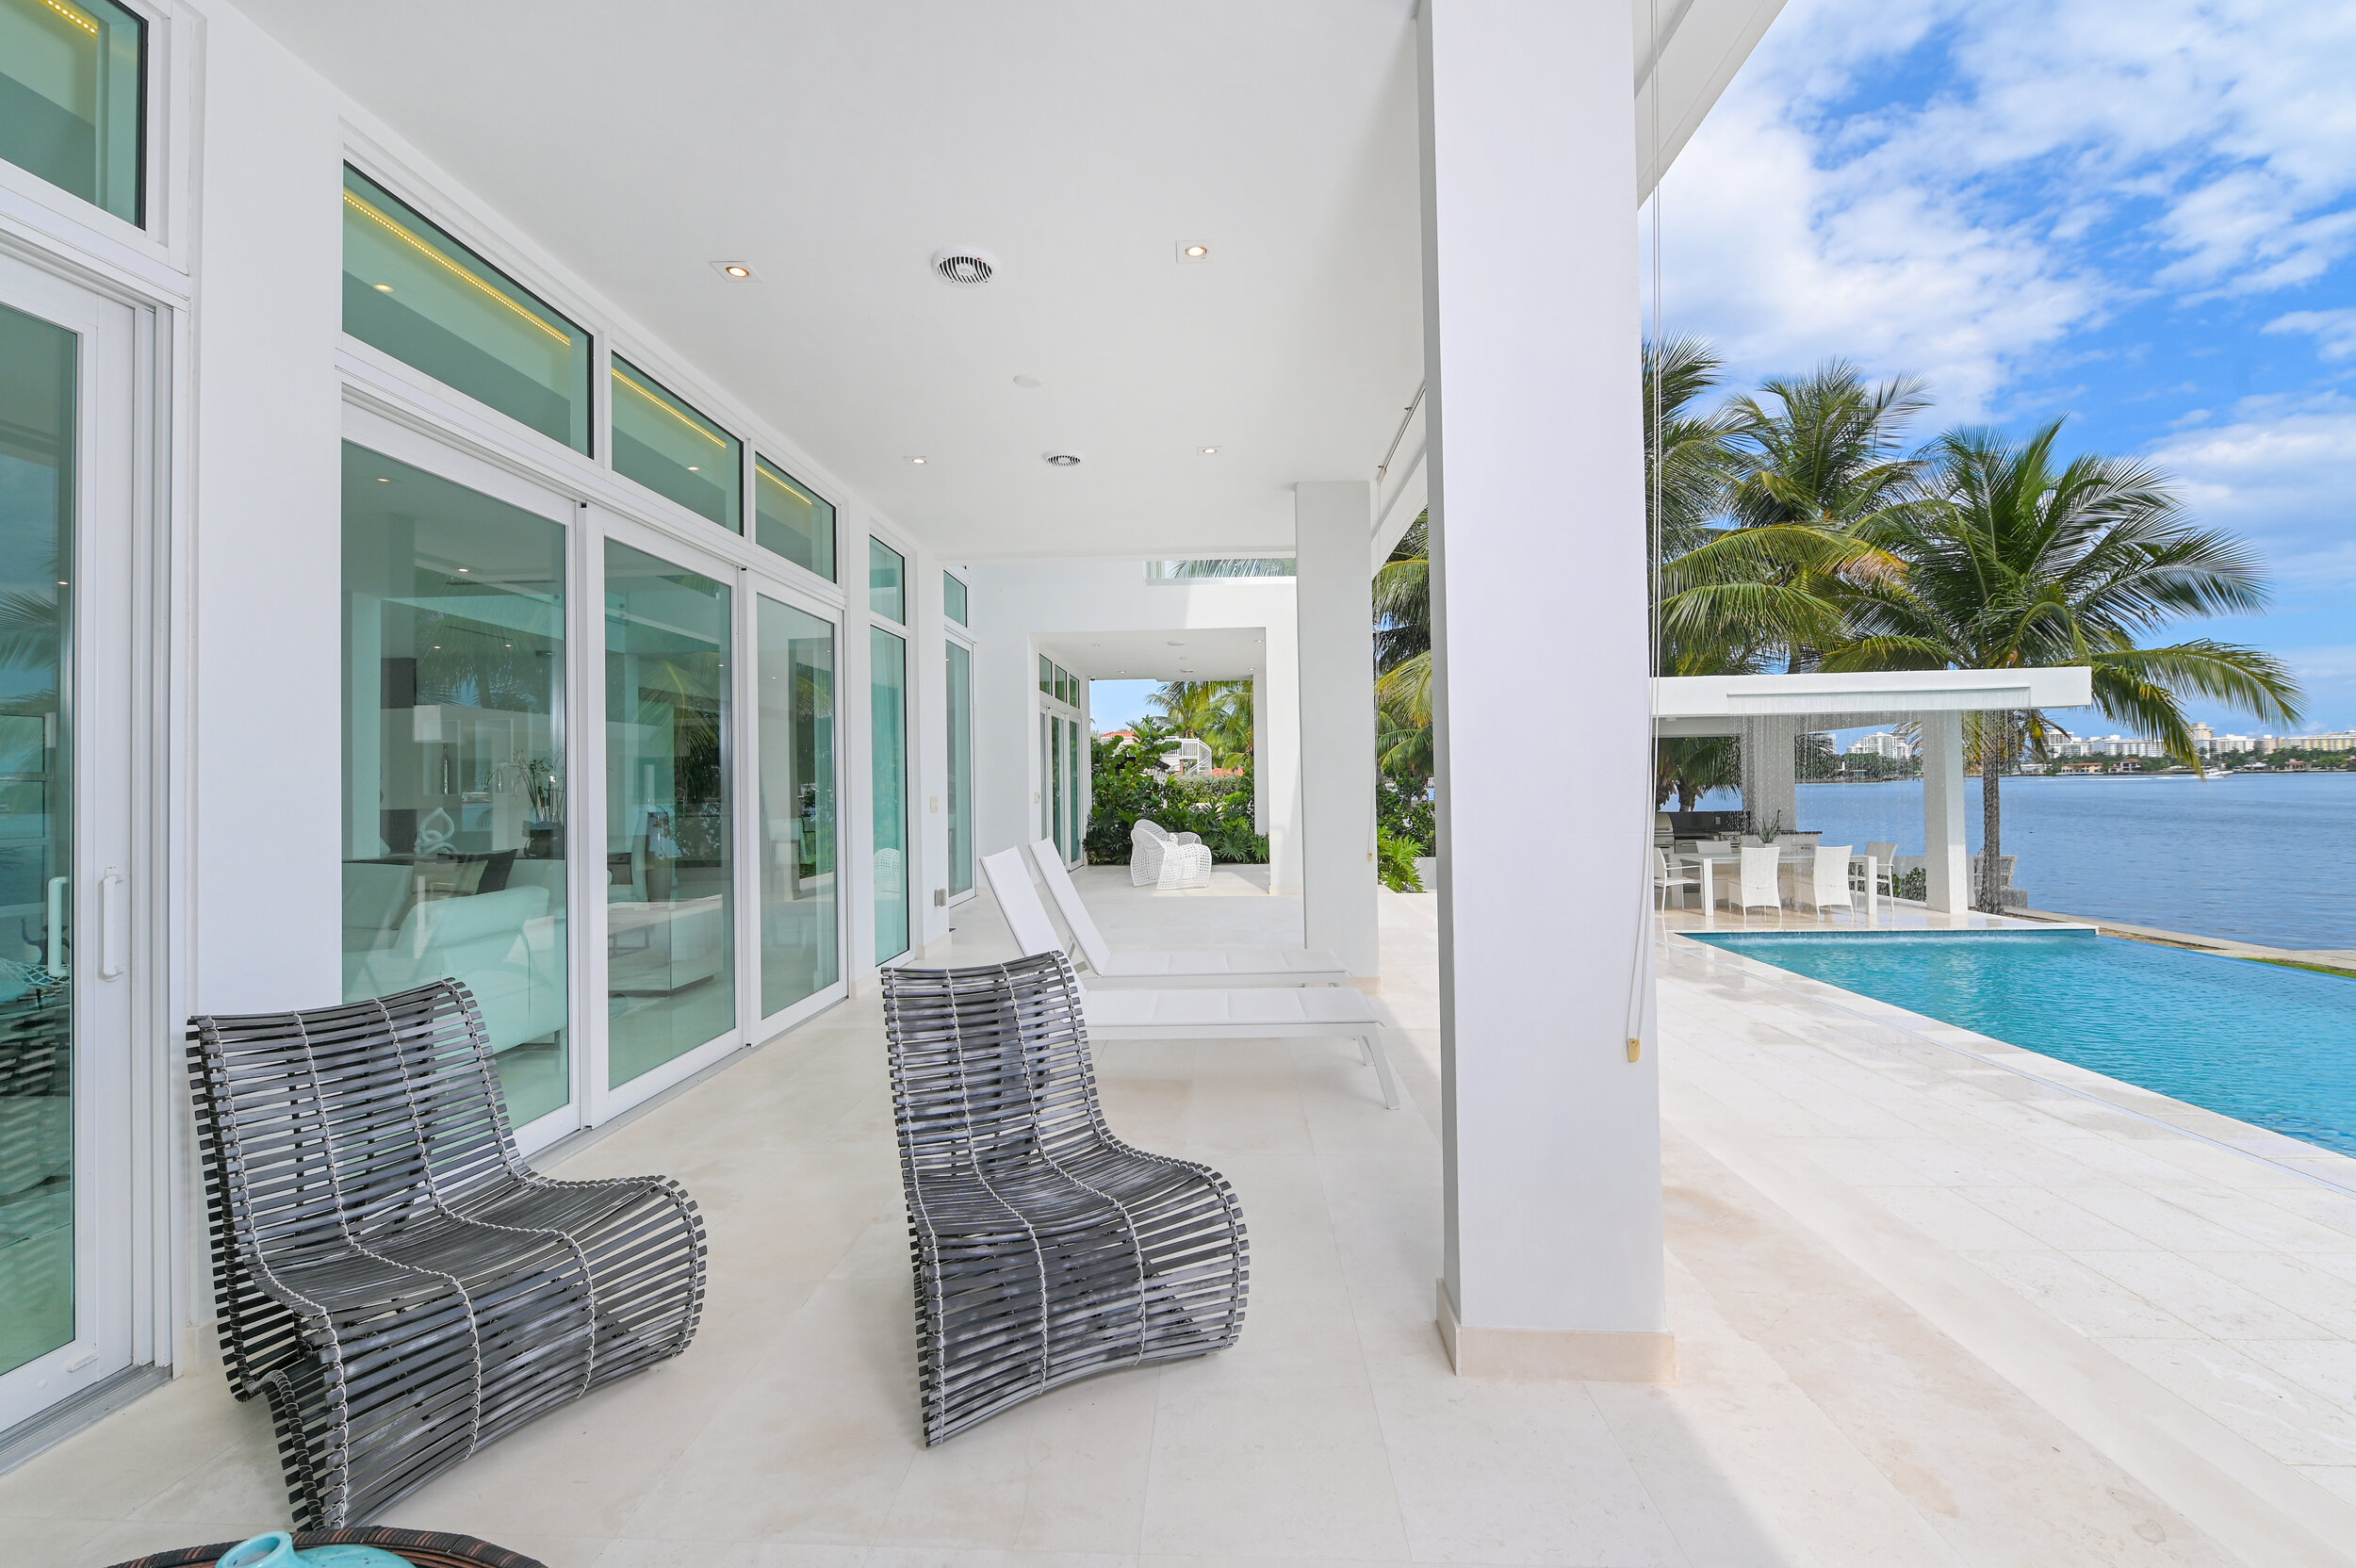 Check Out This Sprawling Modern Waterfront Mansion Just Steps Away From Lil Pump's Miami Home